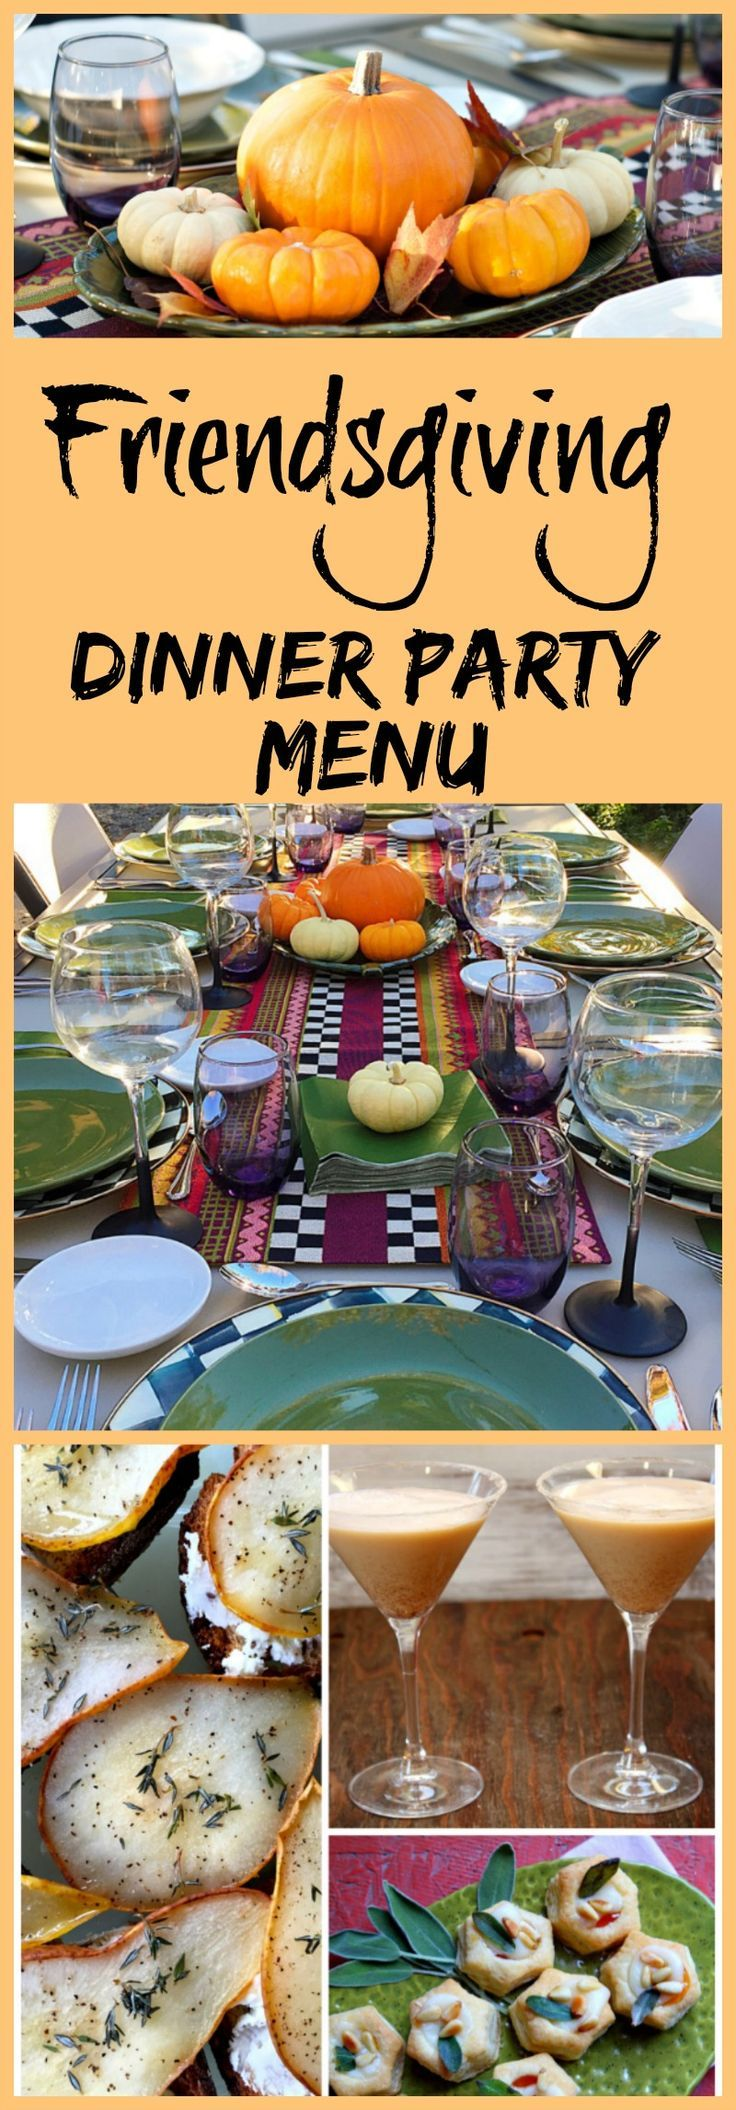 How to Host a Friendsgiving Dinner Party.  Recipes, decor/tablescape ideas, and easy entertaining tips included for a fun fall dinner party with friends.  Friendsgiving Dinner Party Menu (Halloween Appetizers For Party)